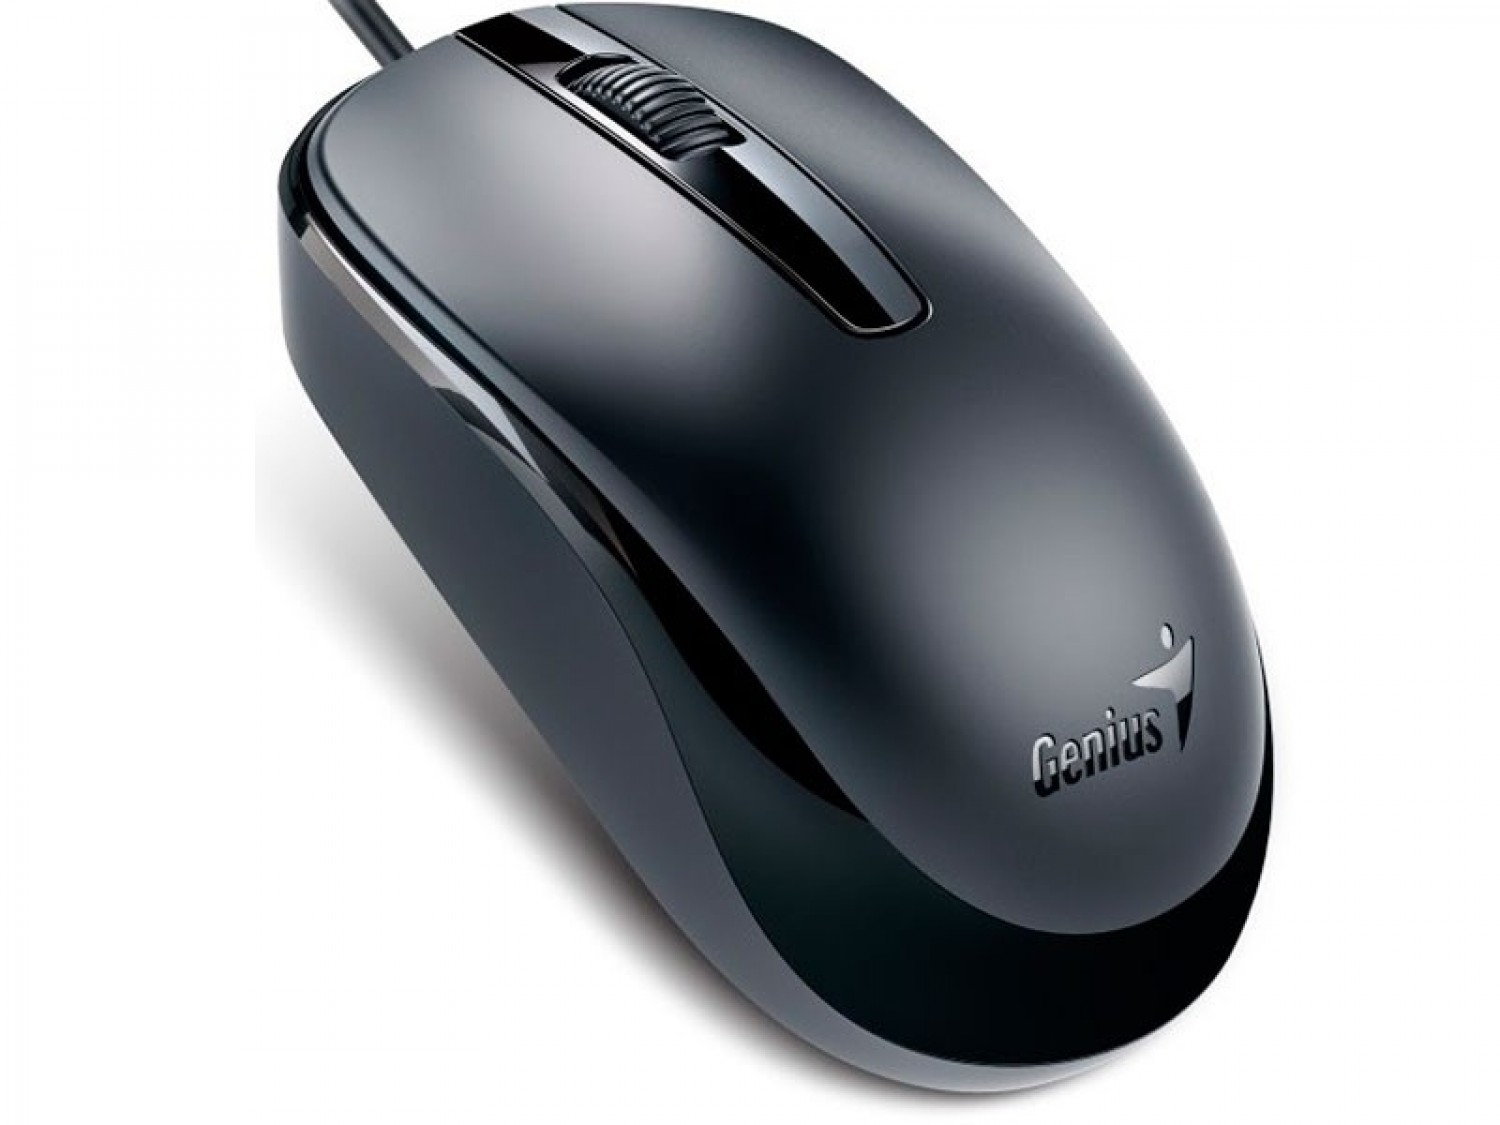 MOUSE GENIUS DX-120 G5 BLACK USB